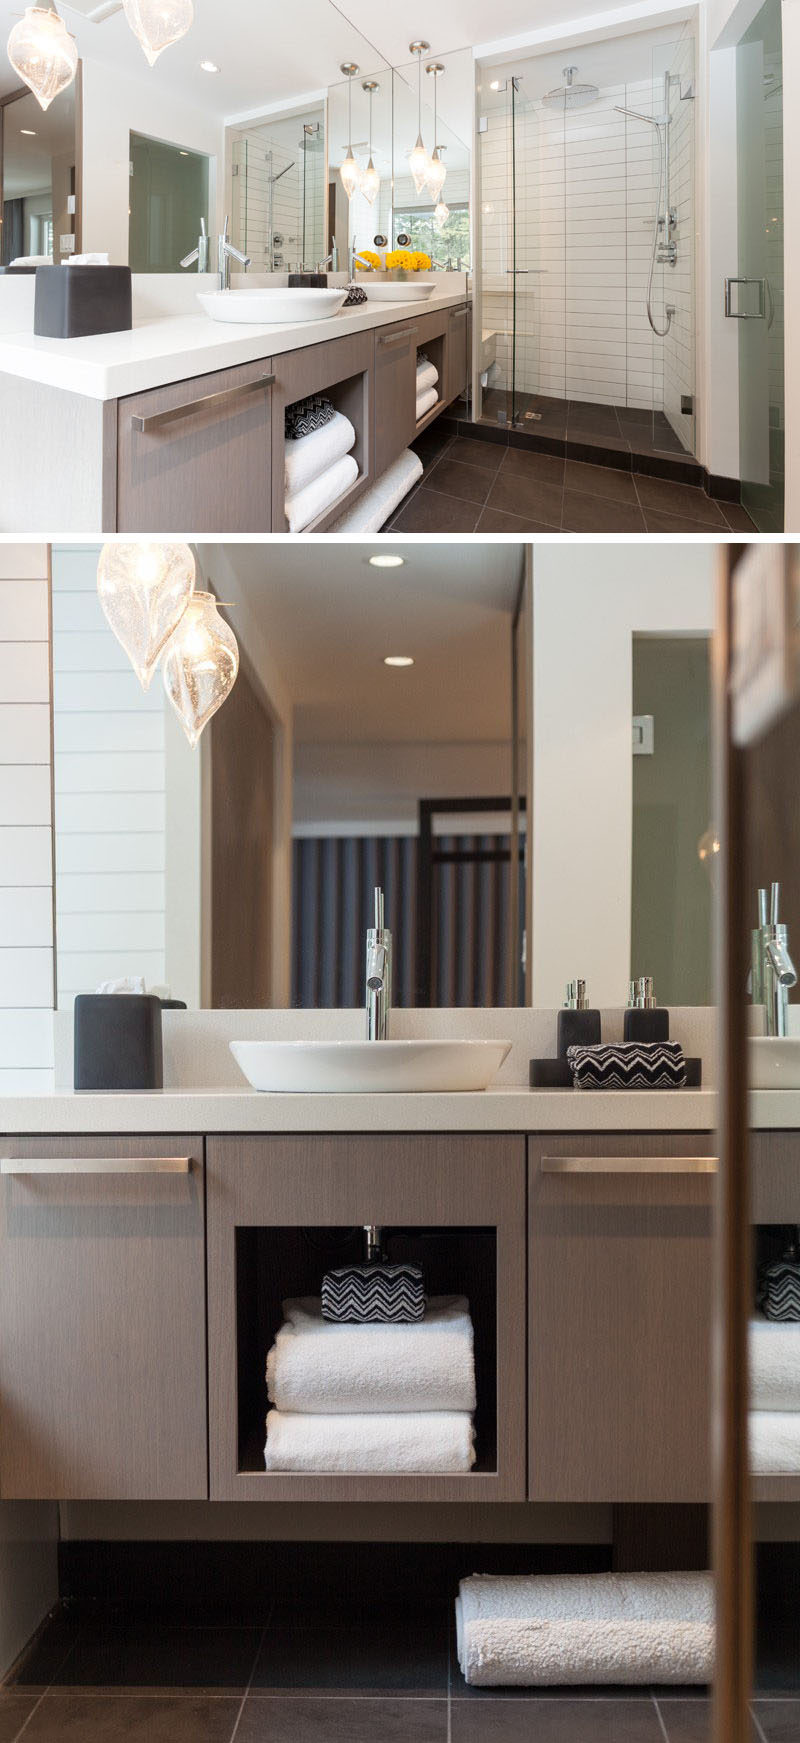 Good 15 Examples Of Bathroom Vanities That Have Open Shelving // Under Each Of  The Sinks